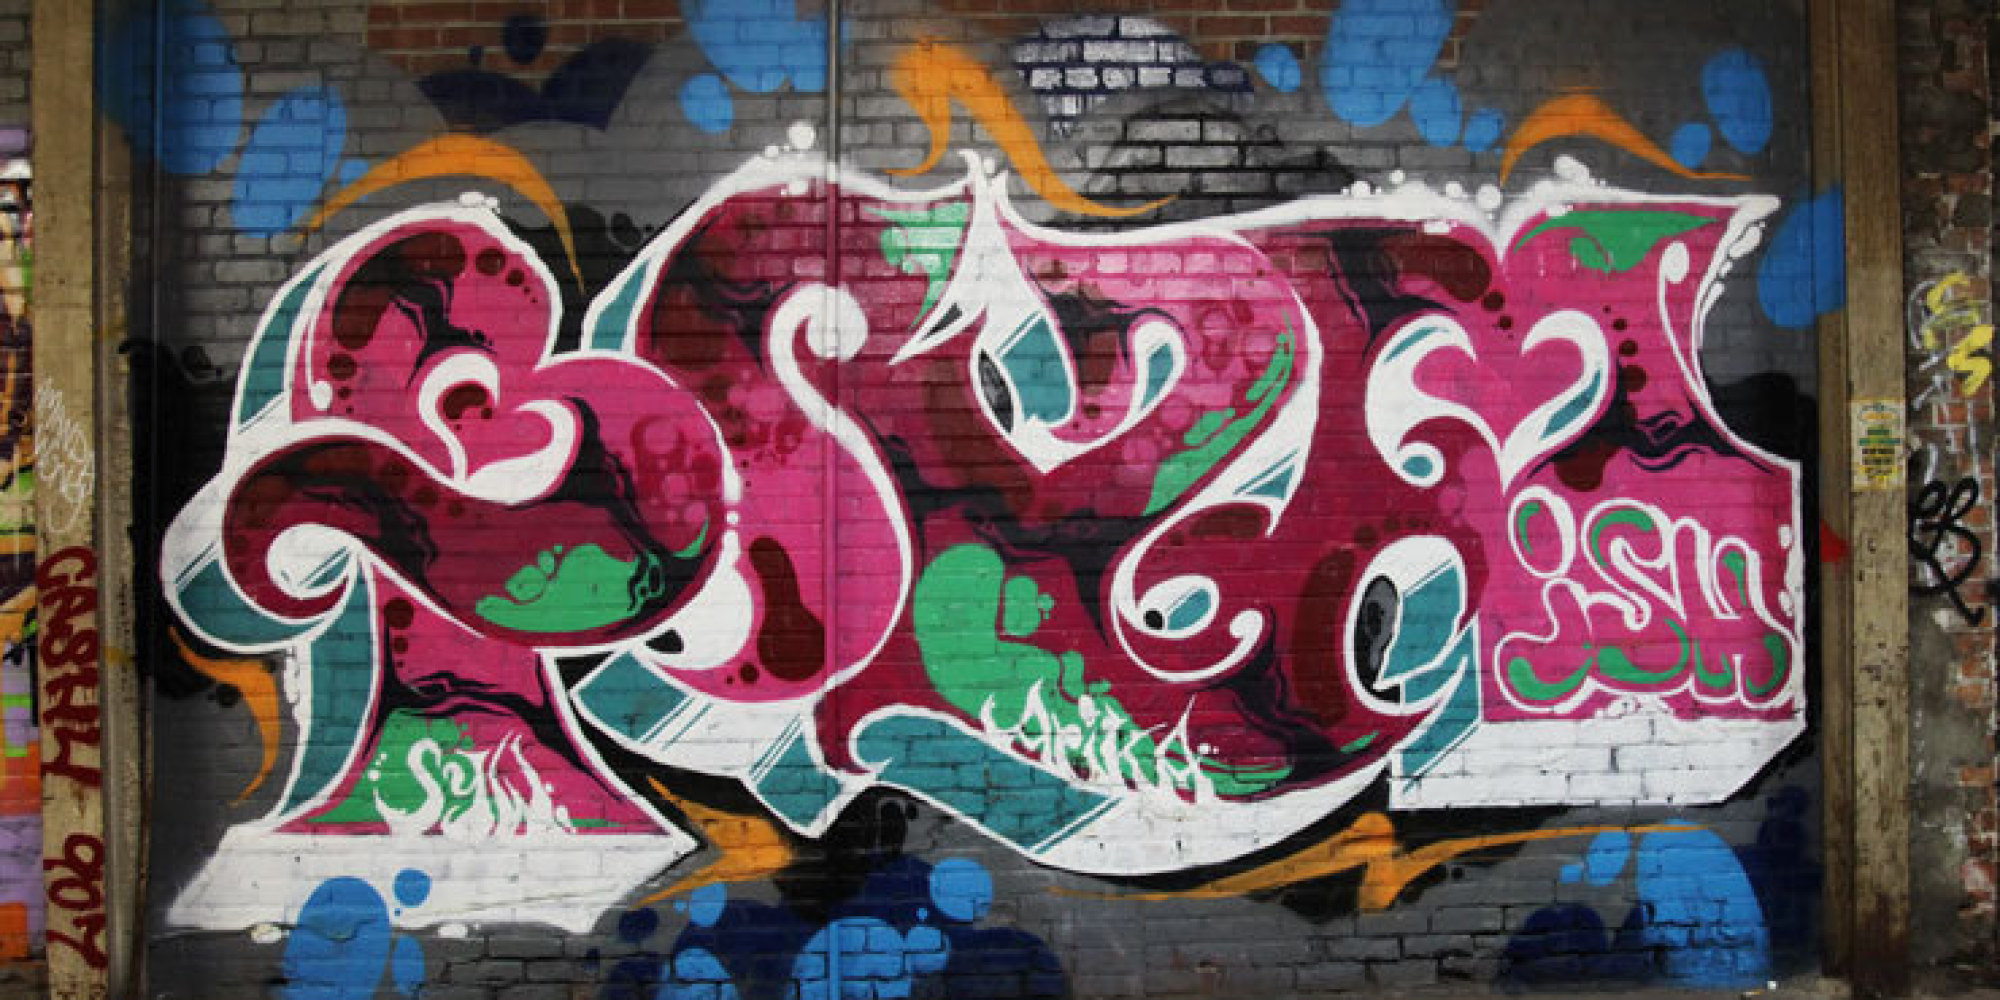 Zayn malik graffiti wall - When Counter Culture Becomes Culture Wastedland 2 And Andrew H Shirley Huffpost